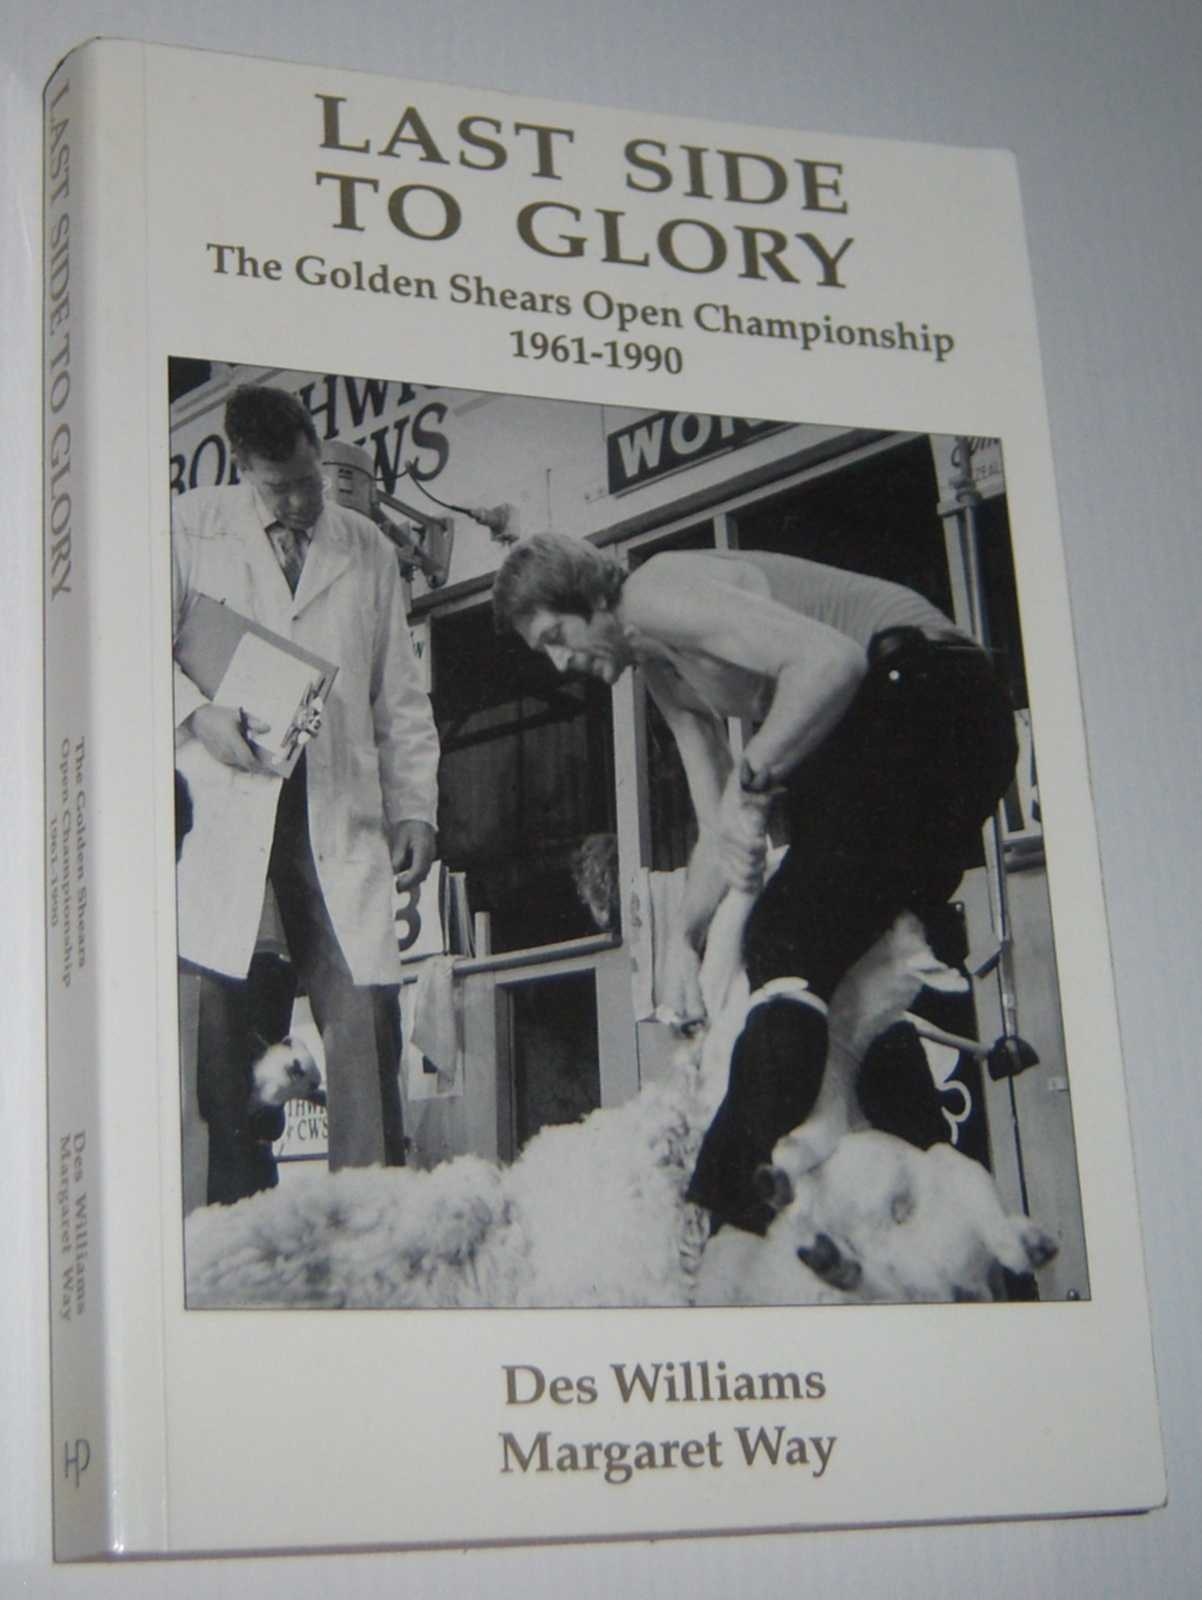 Image for LAST SIDE TO GLORY: The Golden Shears Open Championship 1961-1990 (Signed Copy)